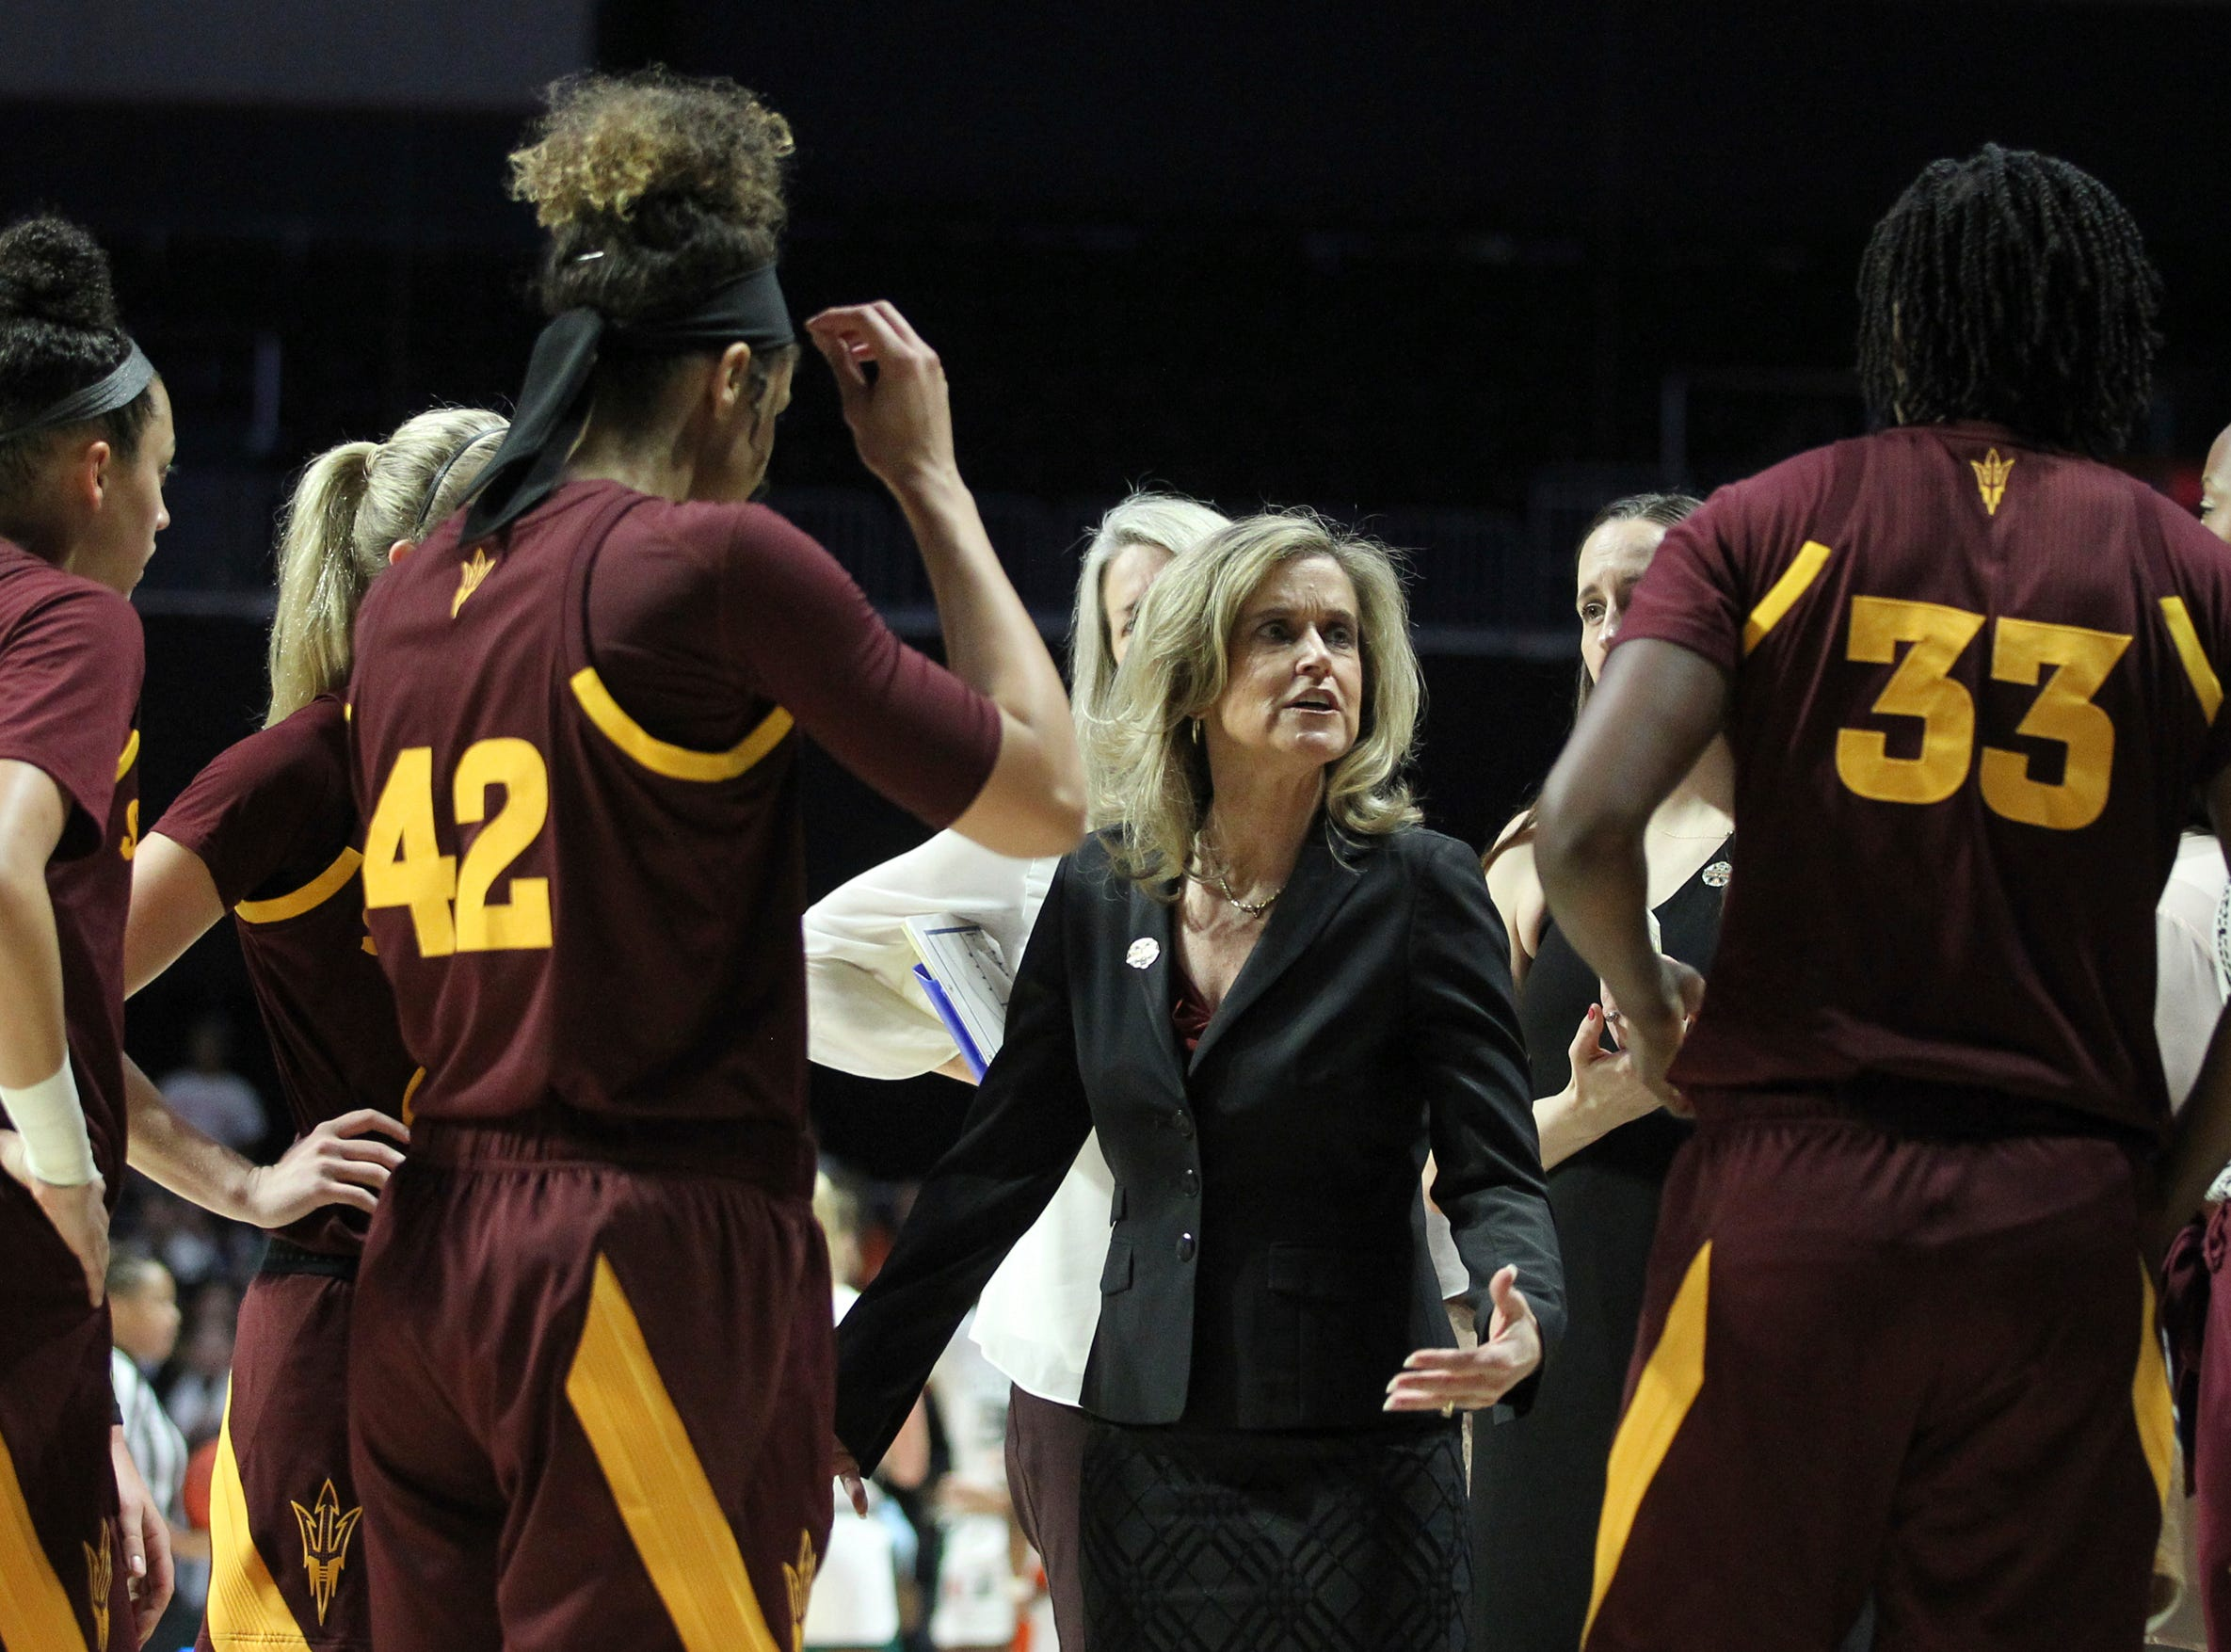 Arizona State coach Charli Turner Thorne, center, talks to her team during a timeout during a second-round women's college basketball game against Miami in the NCAA Tournament, Sunday, March 24, 2019, in Coral Gables, Fla. (AP Photo/Luis M. Alvarez)